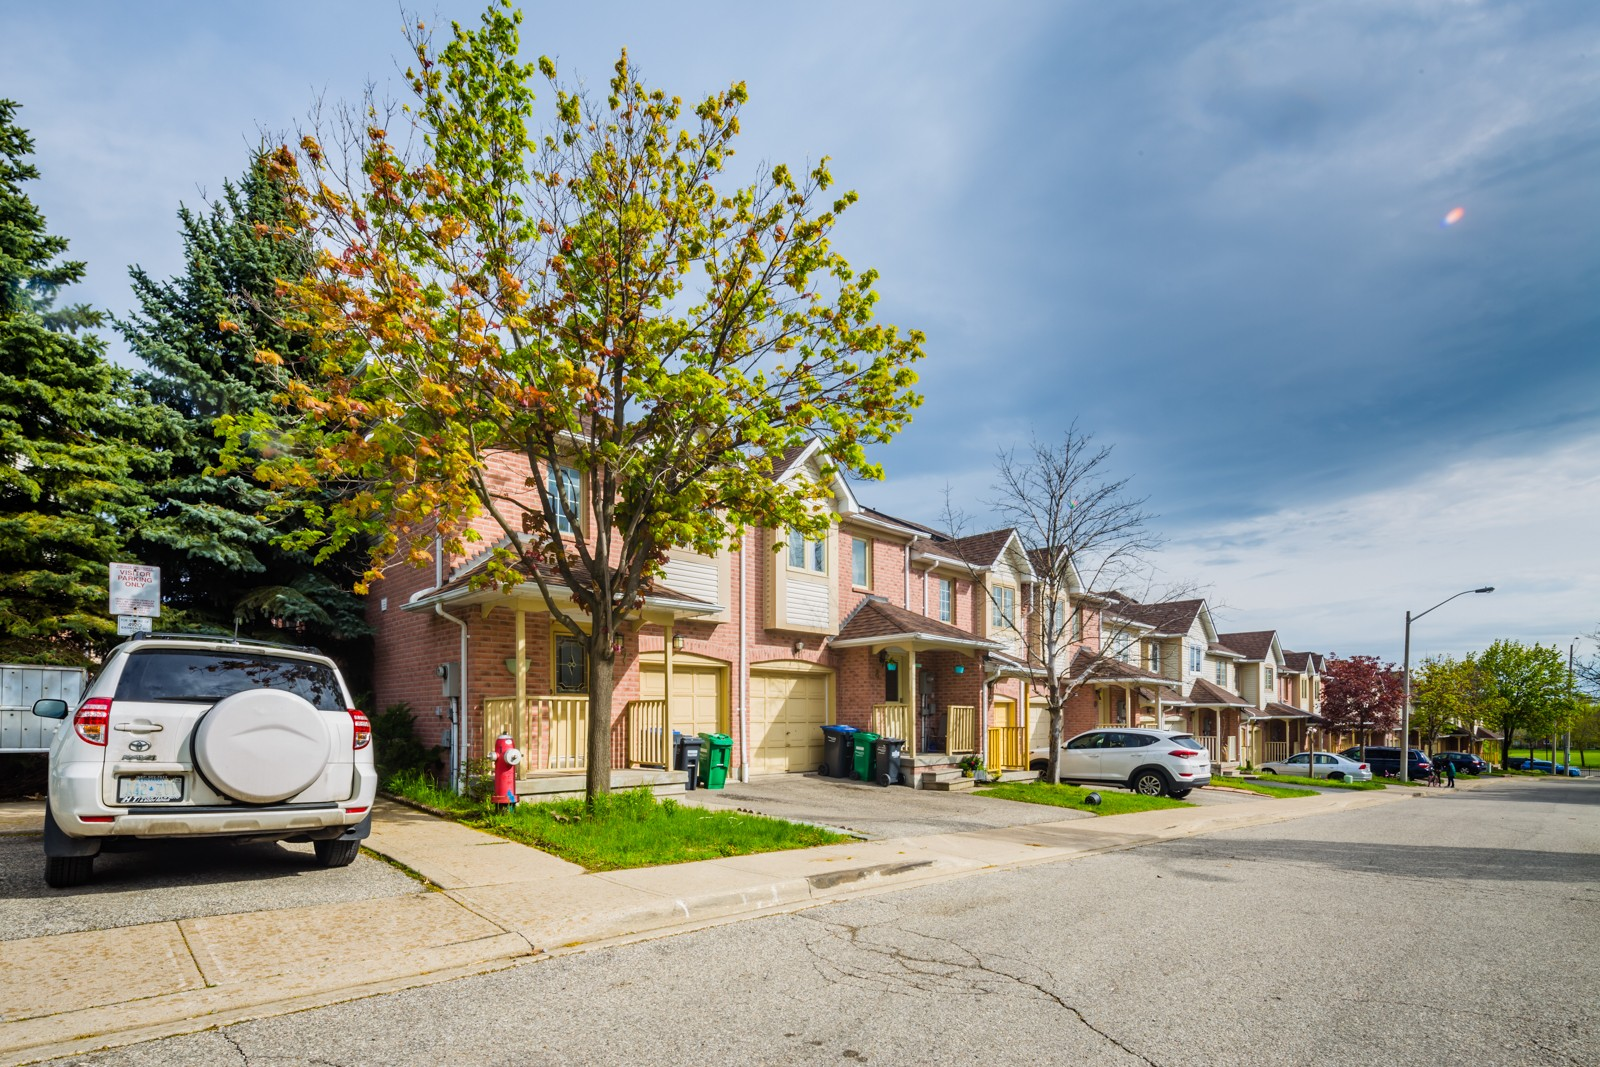 4950 Rathekeale Rd Townhouses at 4950 Rathkeale Rd, Mississauga 0